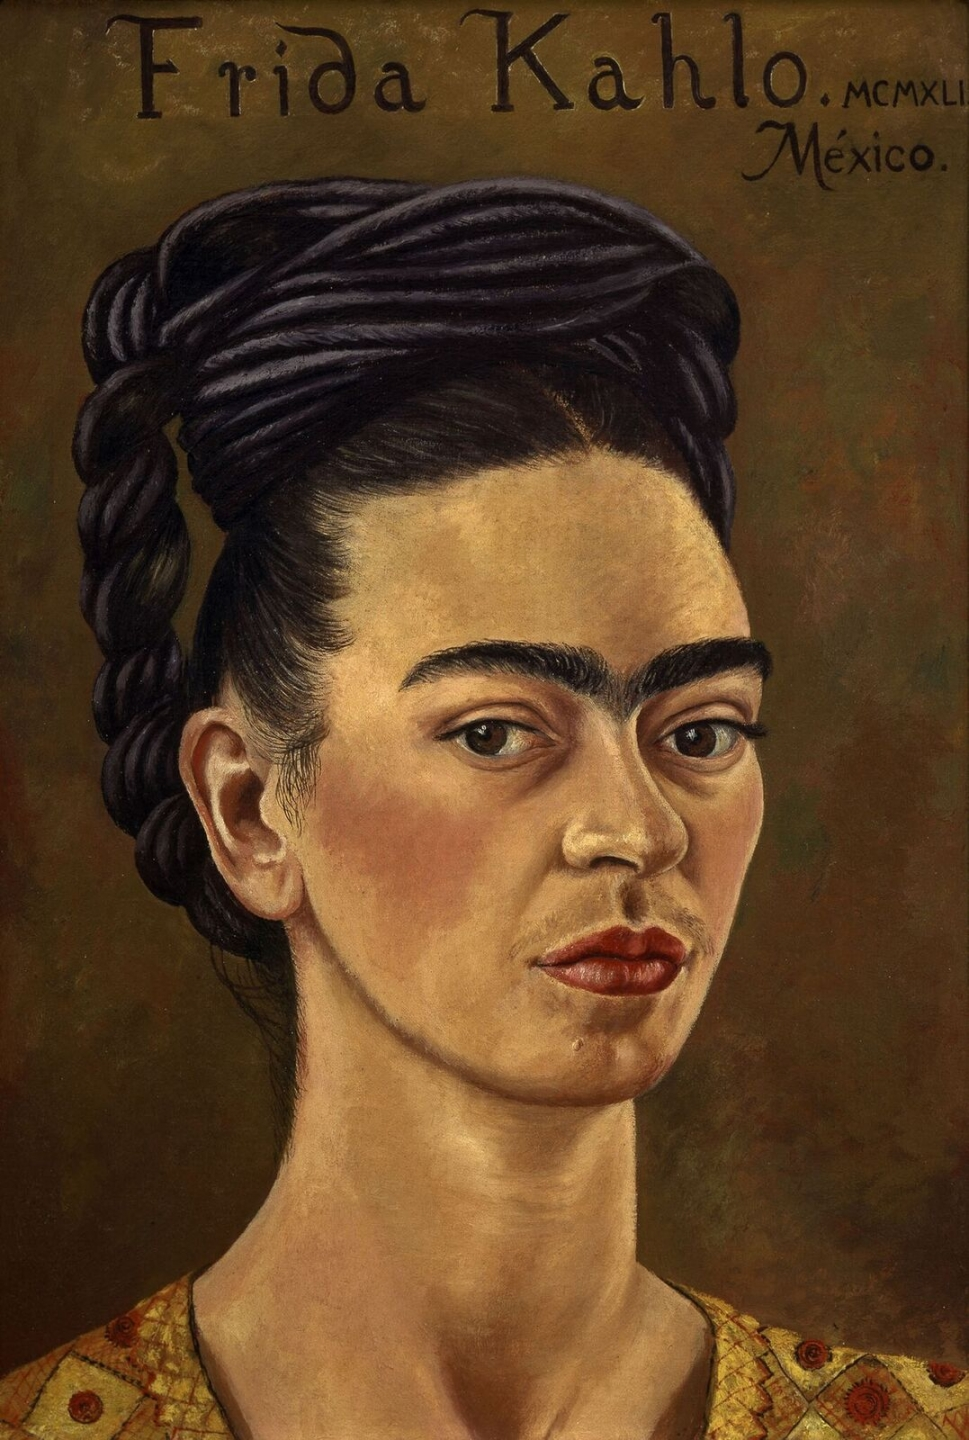 Frida Kahlo Autoritratto con vestiro rosso e oro (Autoritratto MCMXLI), 1941 Olio su tela, 39x27,5 cm The Jacques and Natasha Gelman Collection of 20th Century Mexican Art and The Vergel Foundation, Cuernavaca